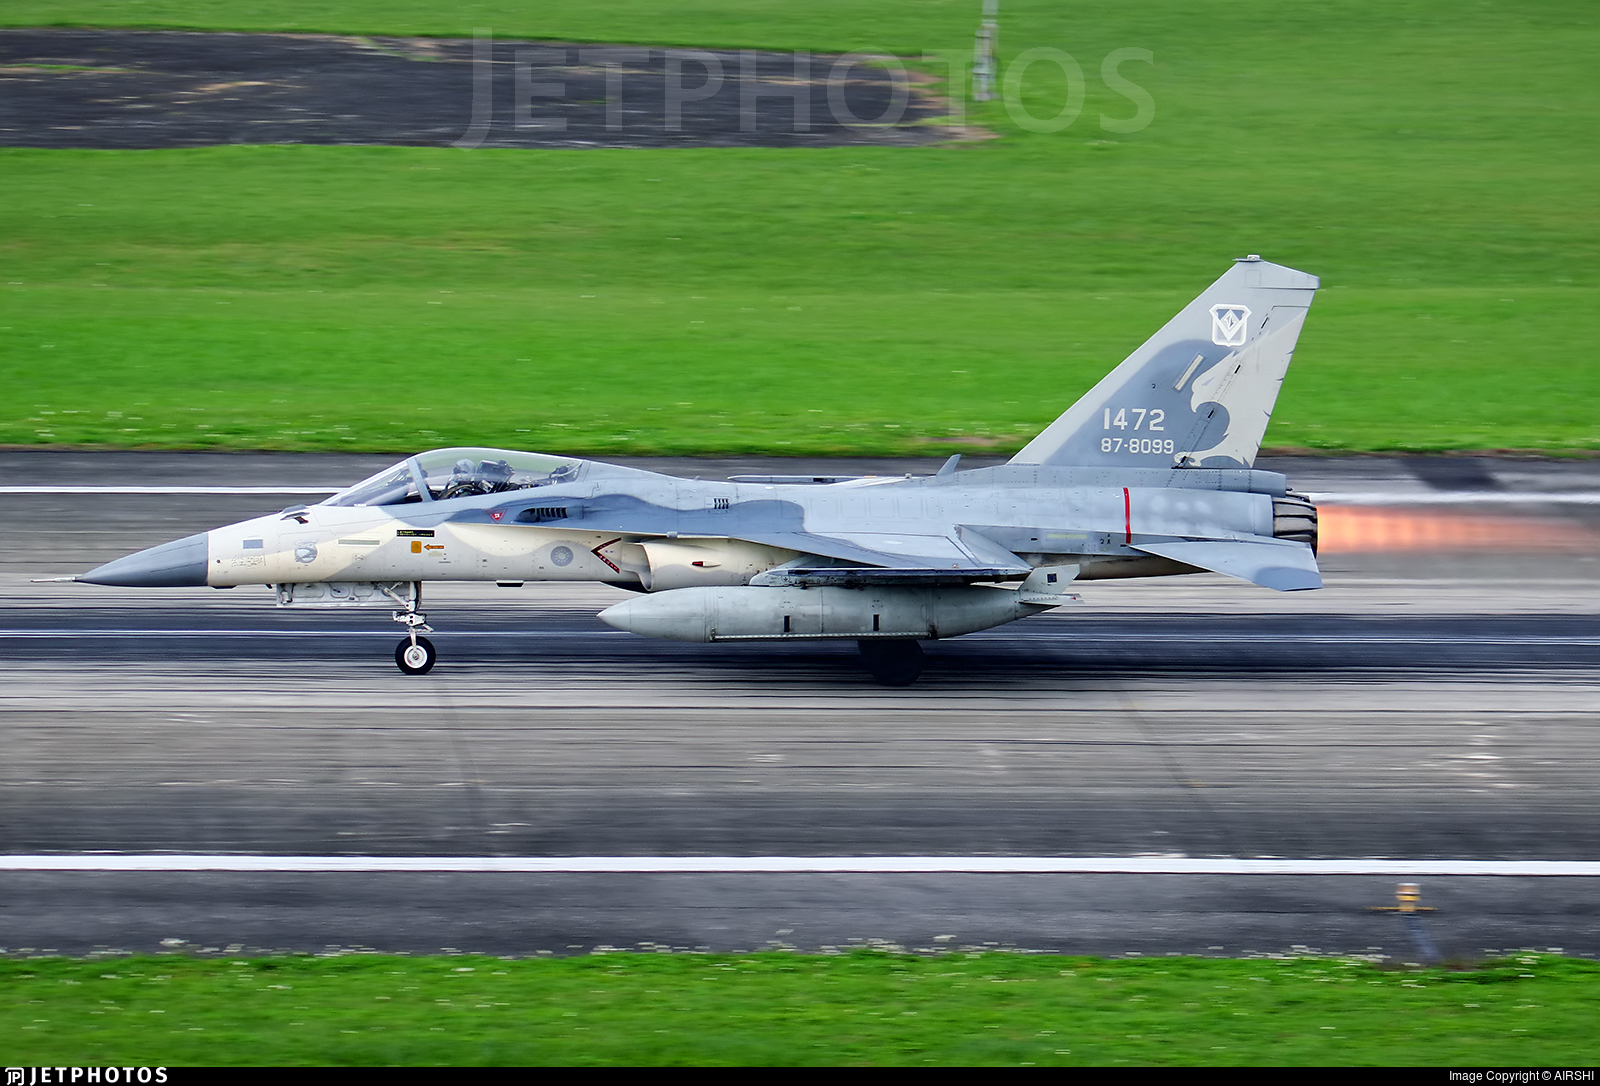 1472 - AIDC F-CK-1C Ching Kuo - Taiwan - Air Force